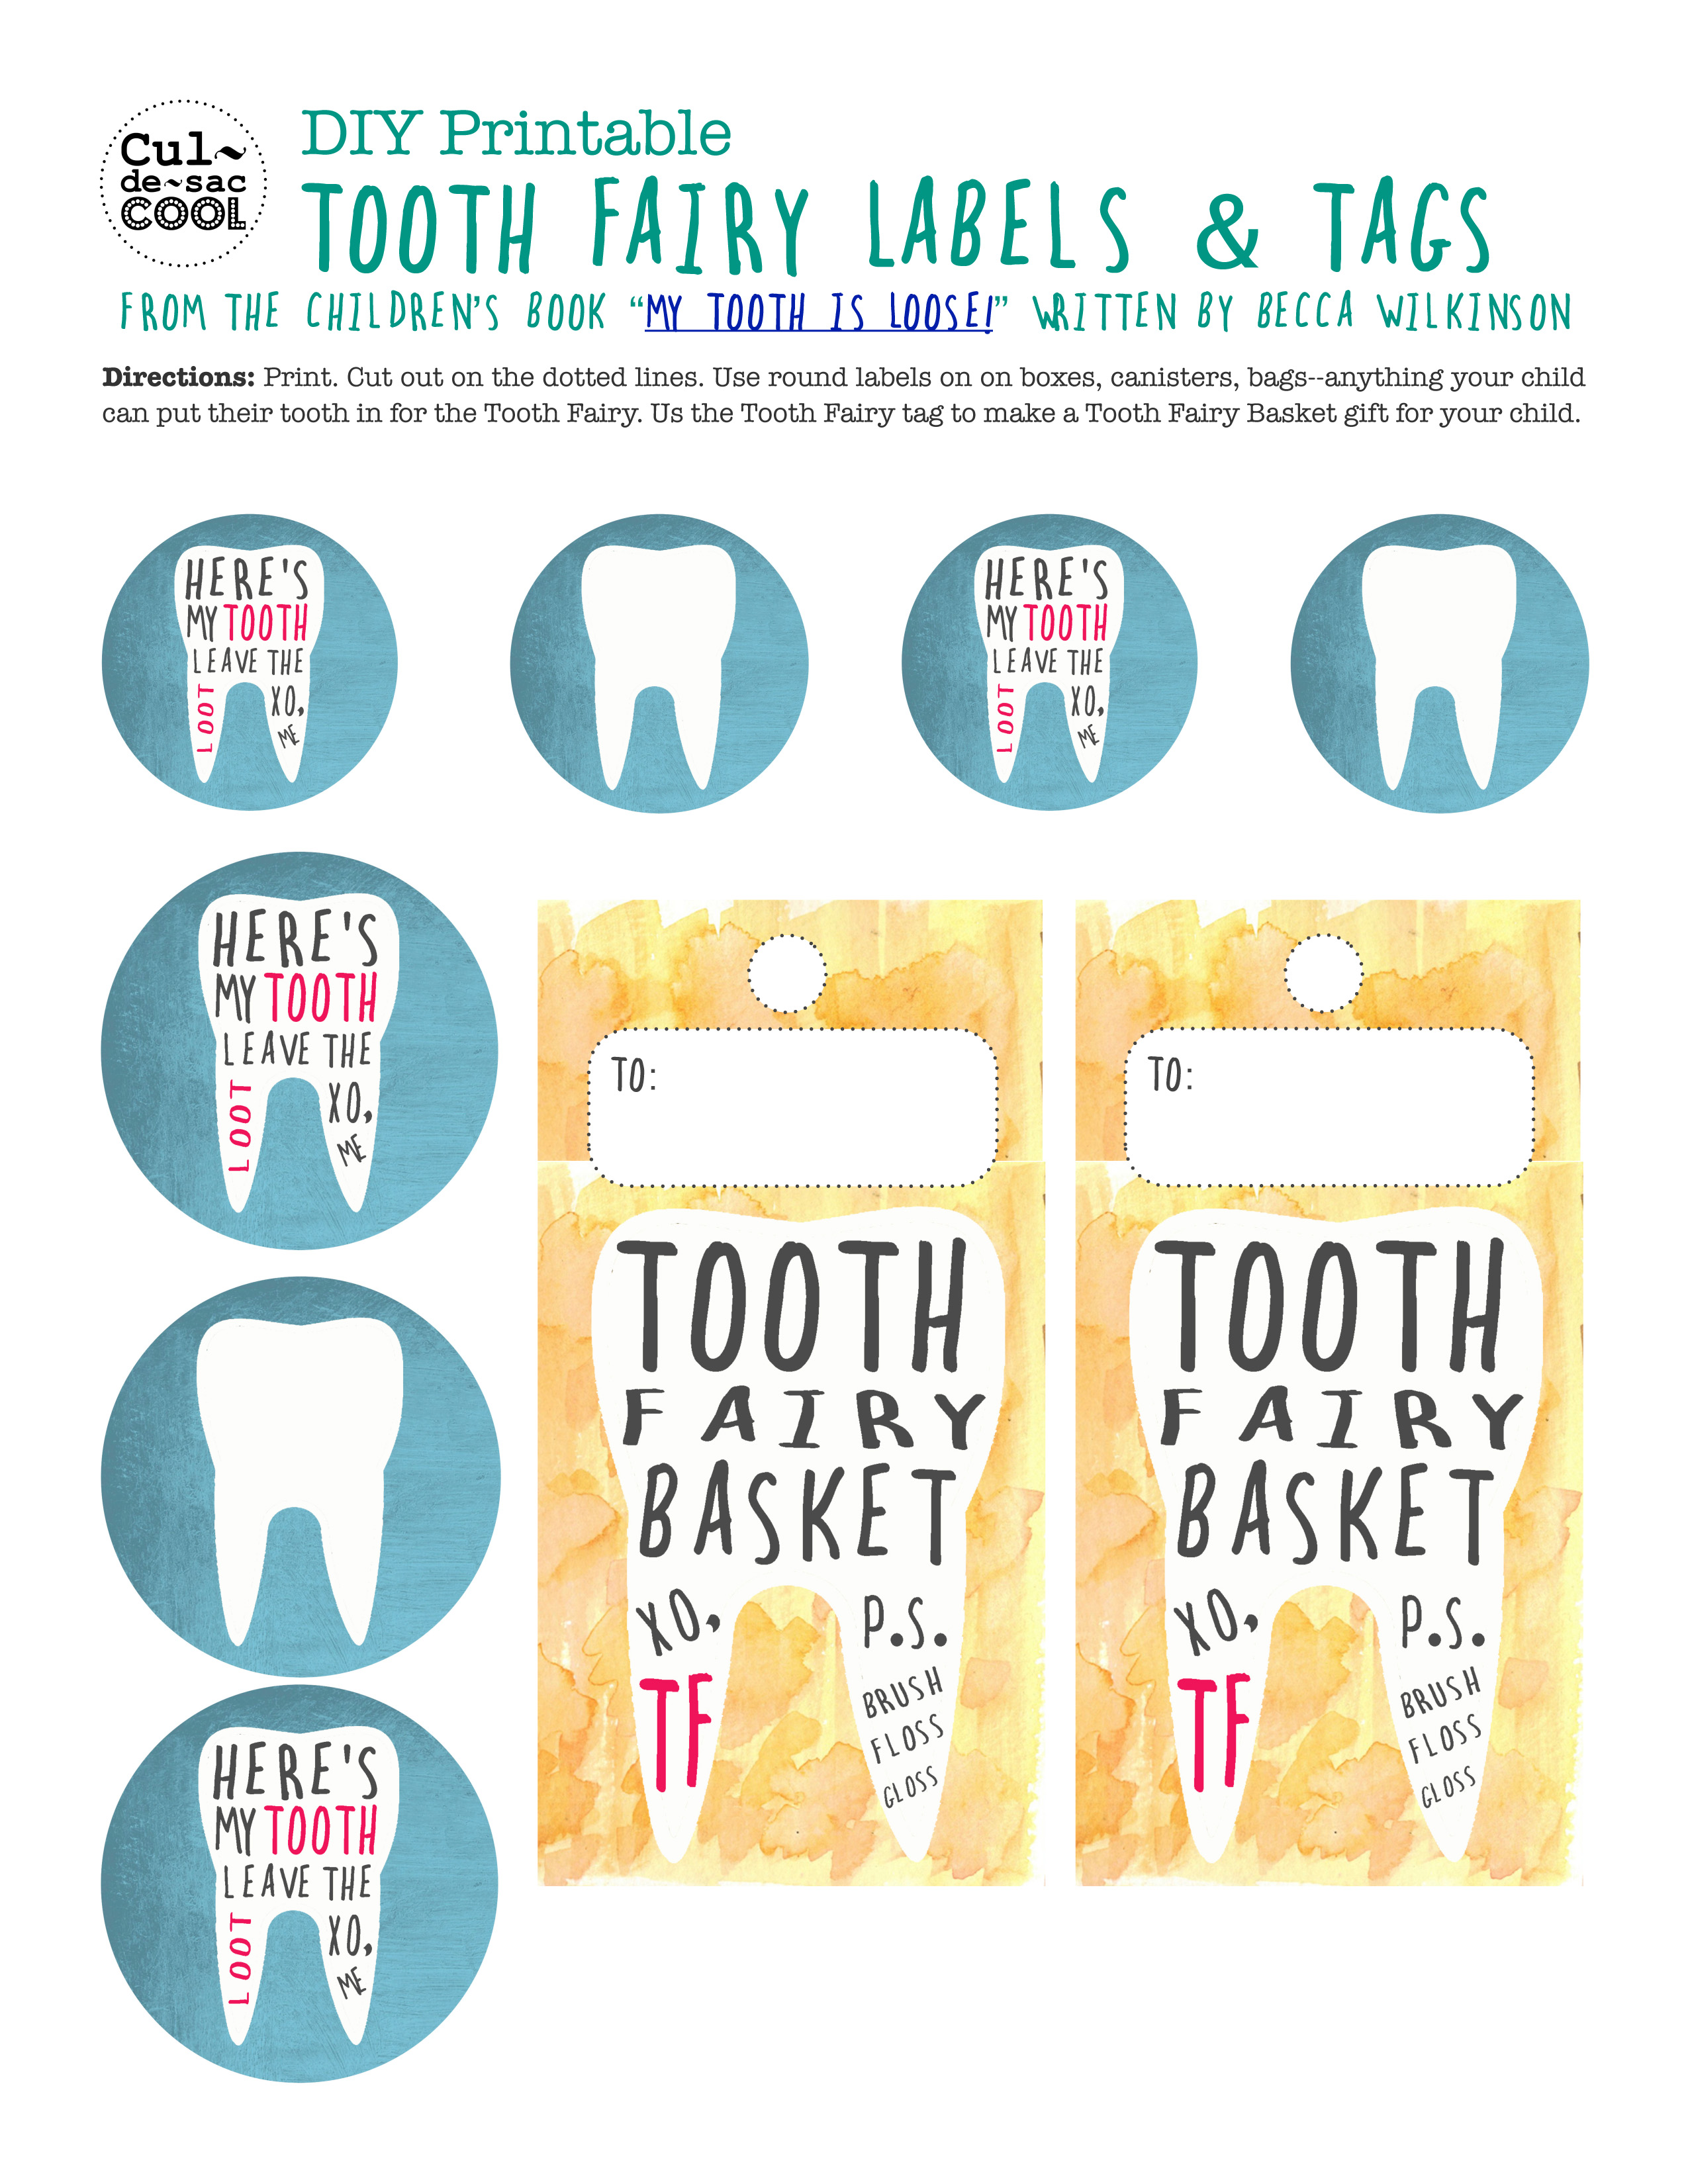 Diy Tooth Fairy Basket With Free Printables From The